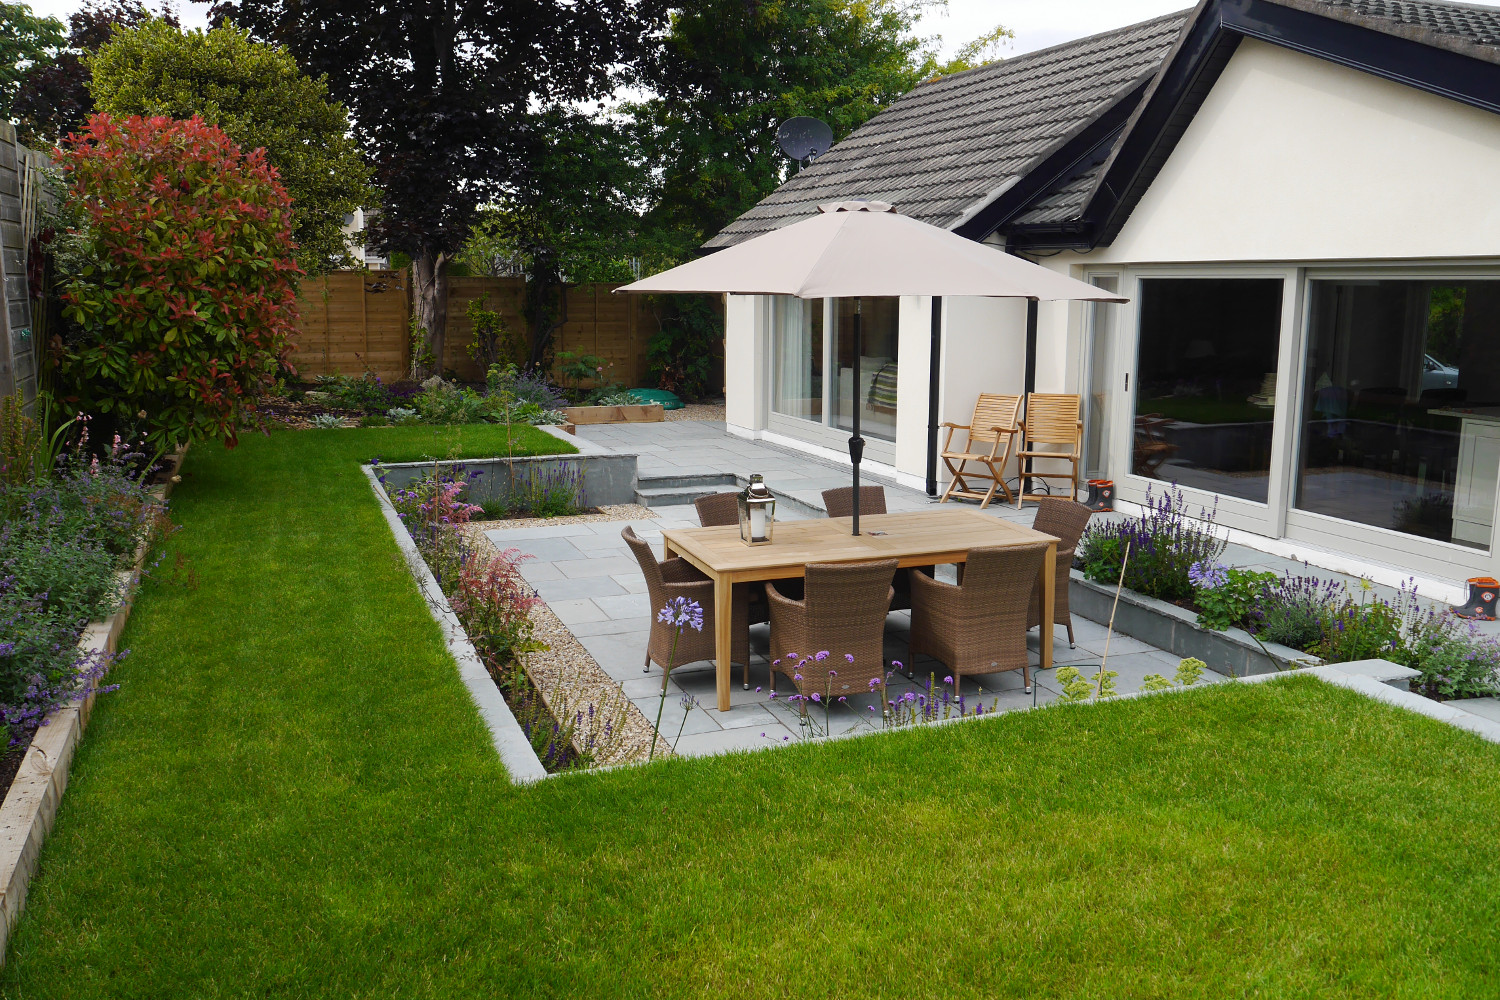 Family garden in Monkstown - Tim Austen Garden Designs on Modern Back Garden Ideas id=26793